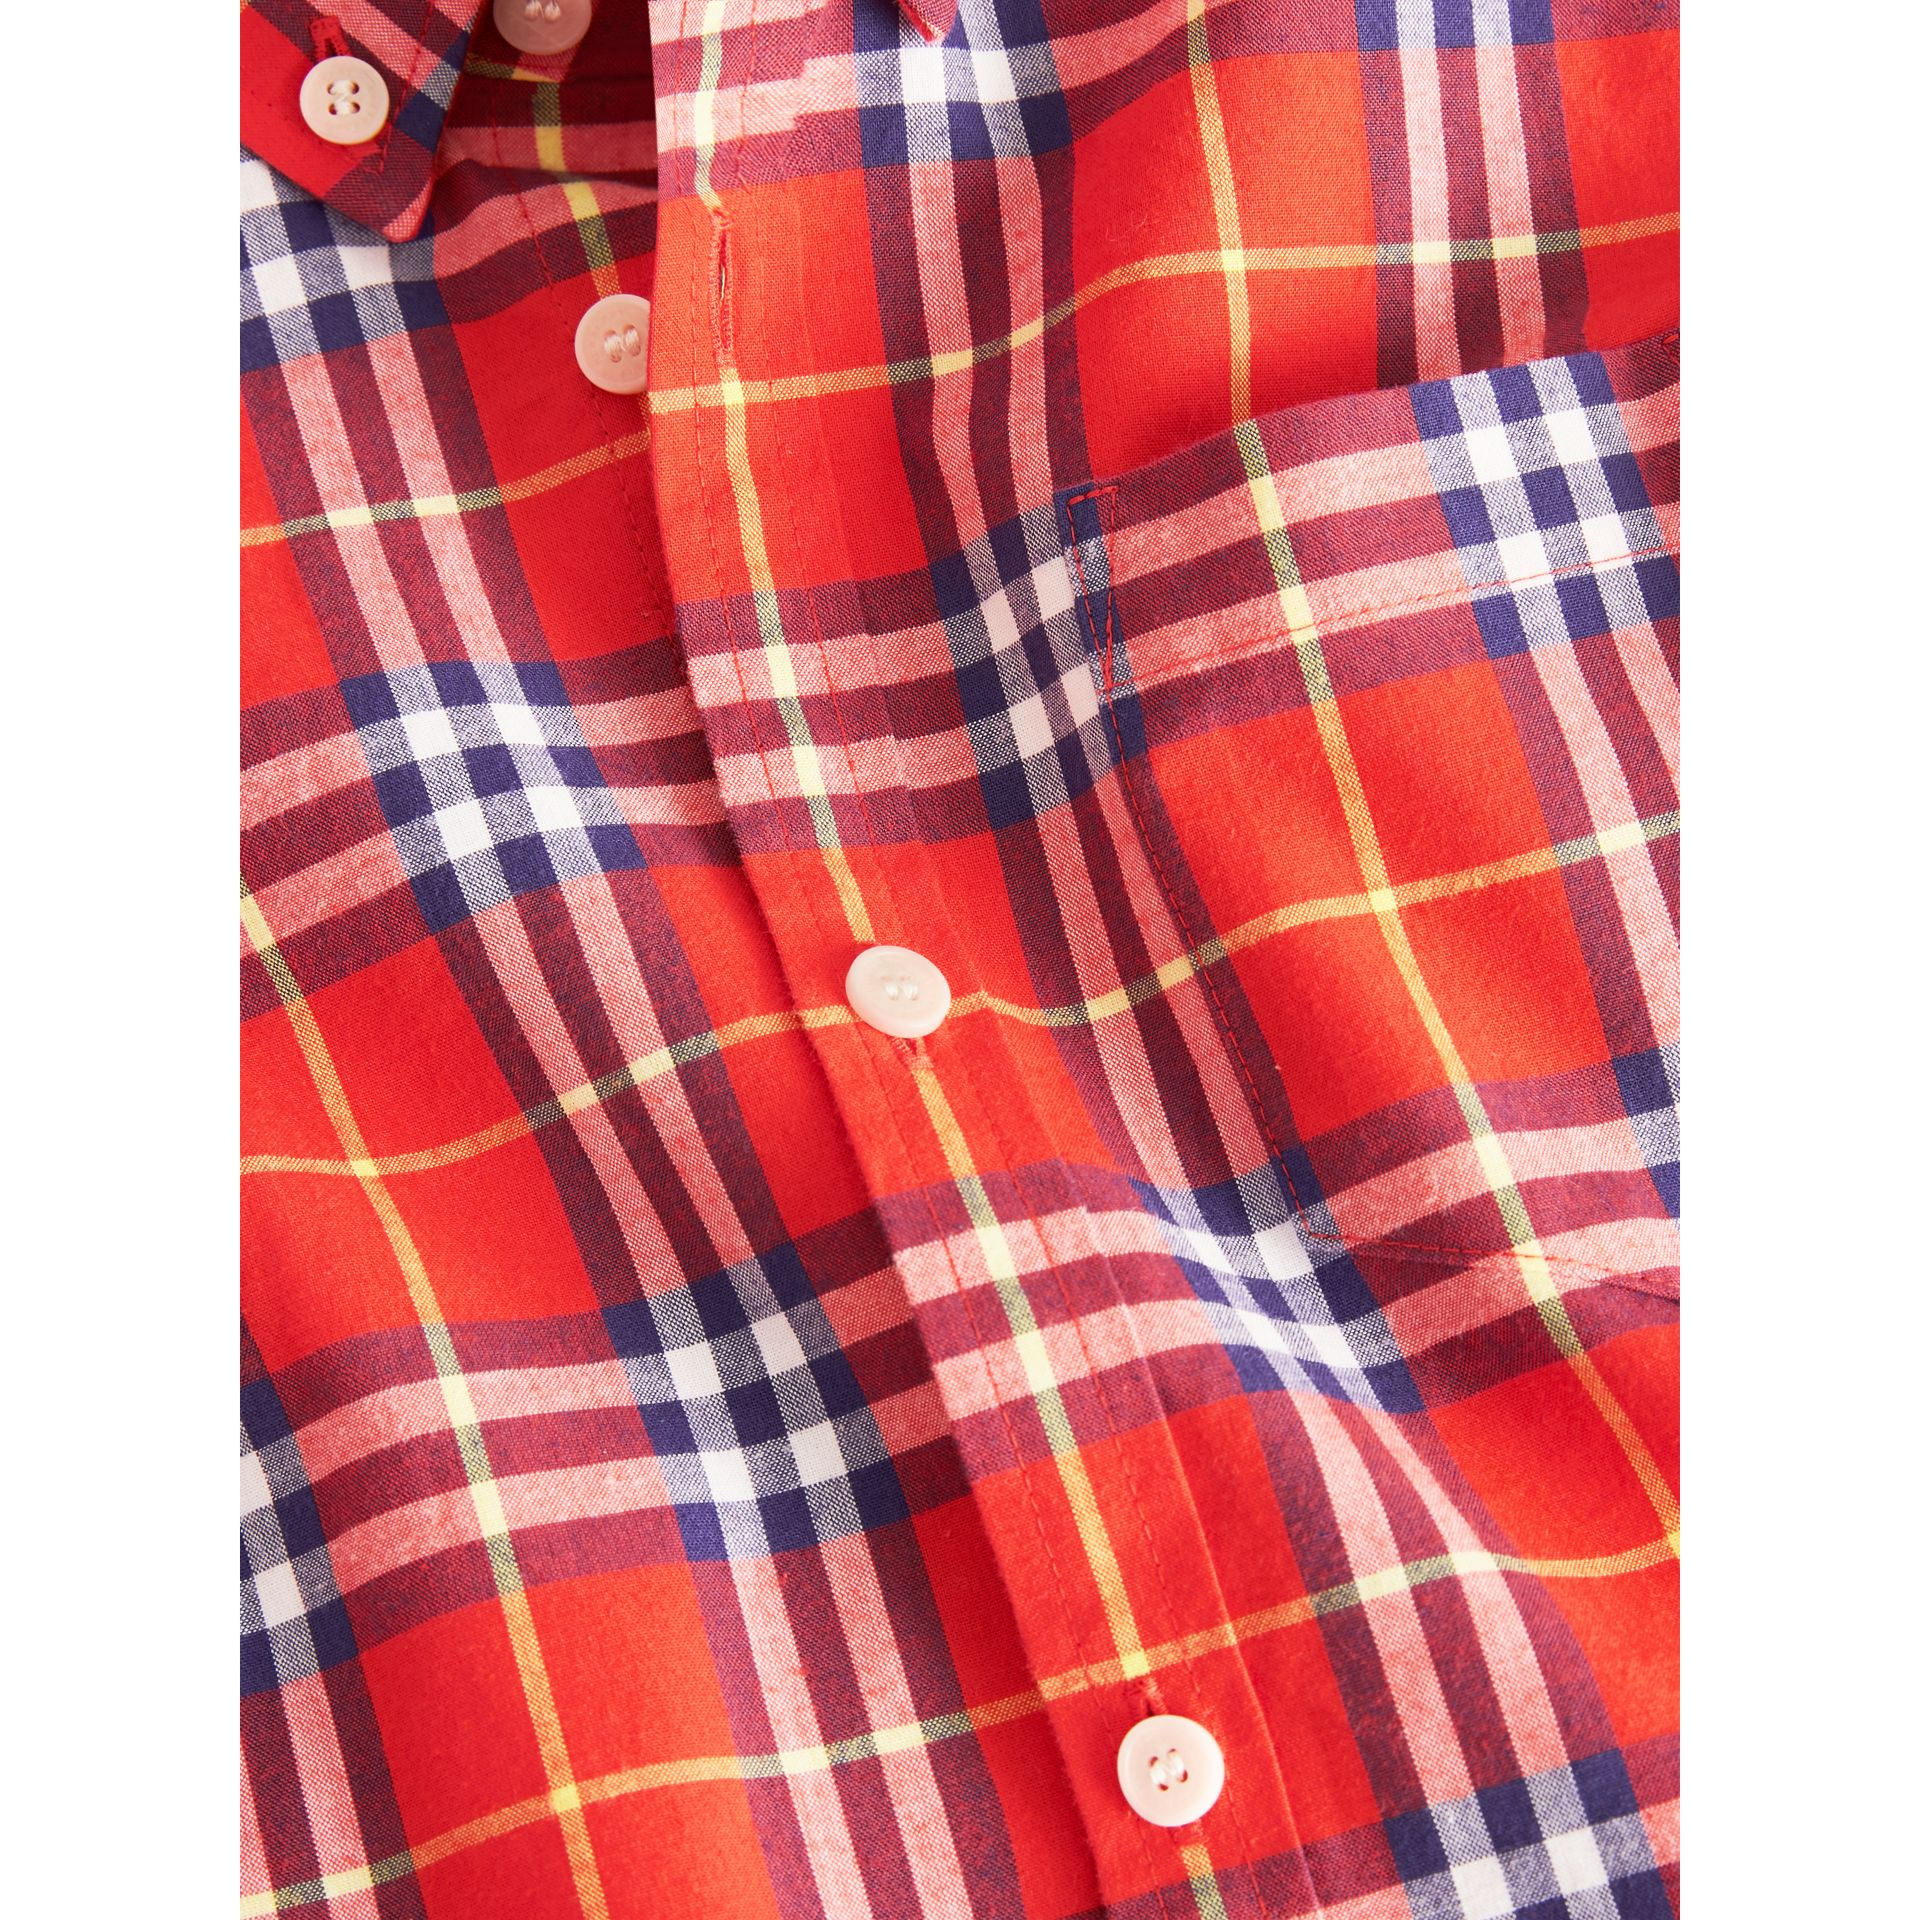 Button-down Collar Check Flannel Shirt in Orange Red | Burberry Hong Kong - gallery image 1